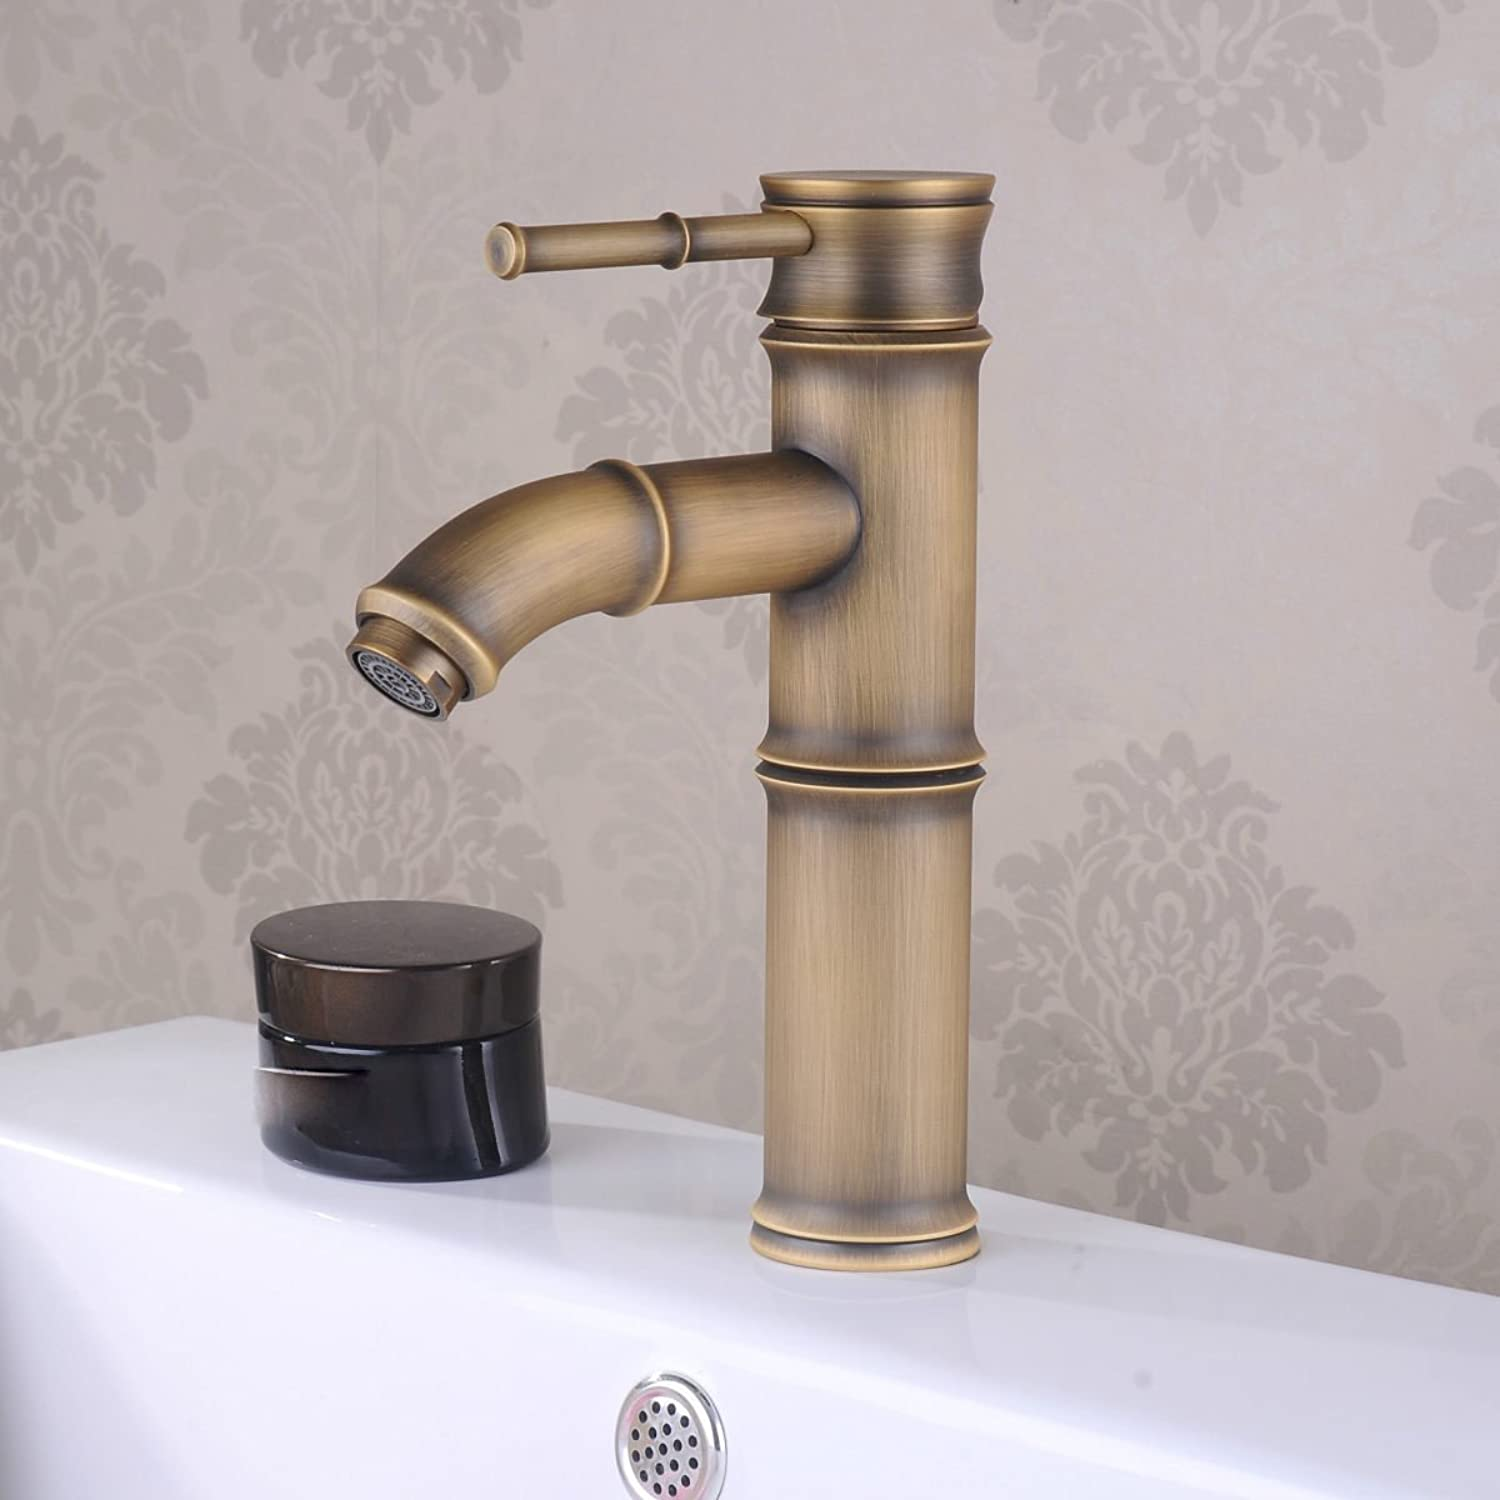 LDONGSH Retro Kitchen Hot And Cold Copper Bamboo European Style American Style Satin Finish Wash Basin Faucet